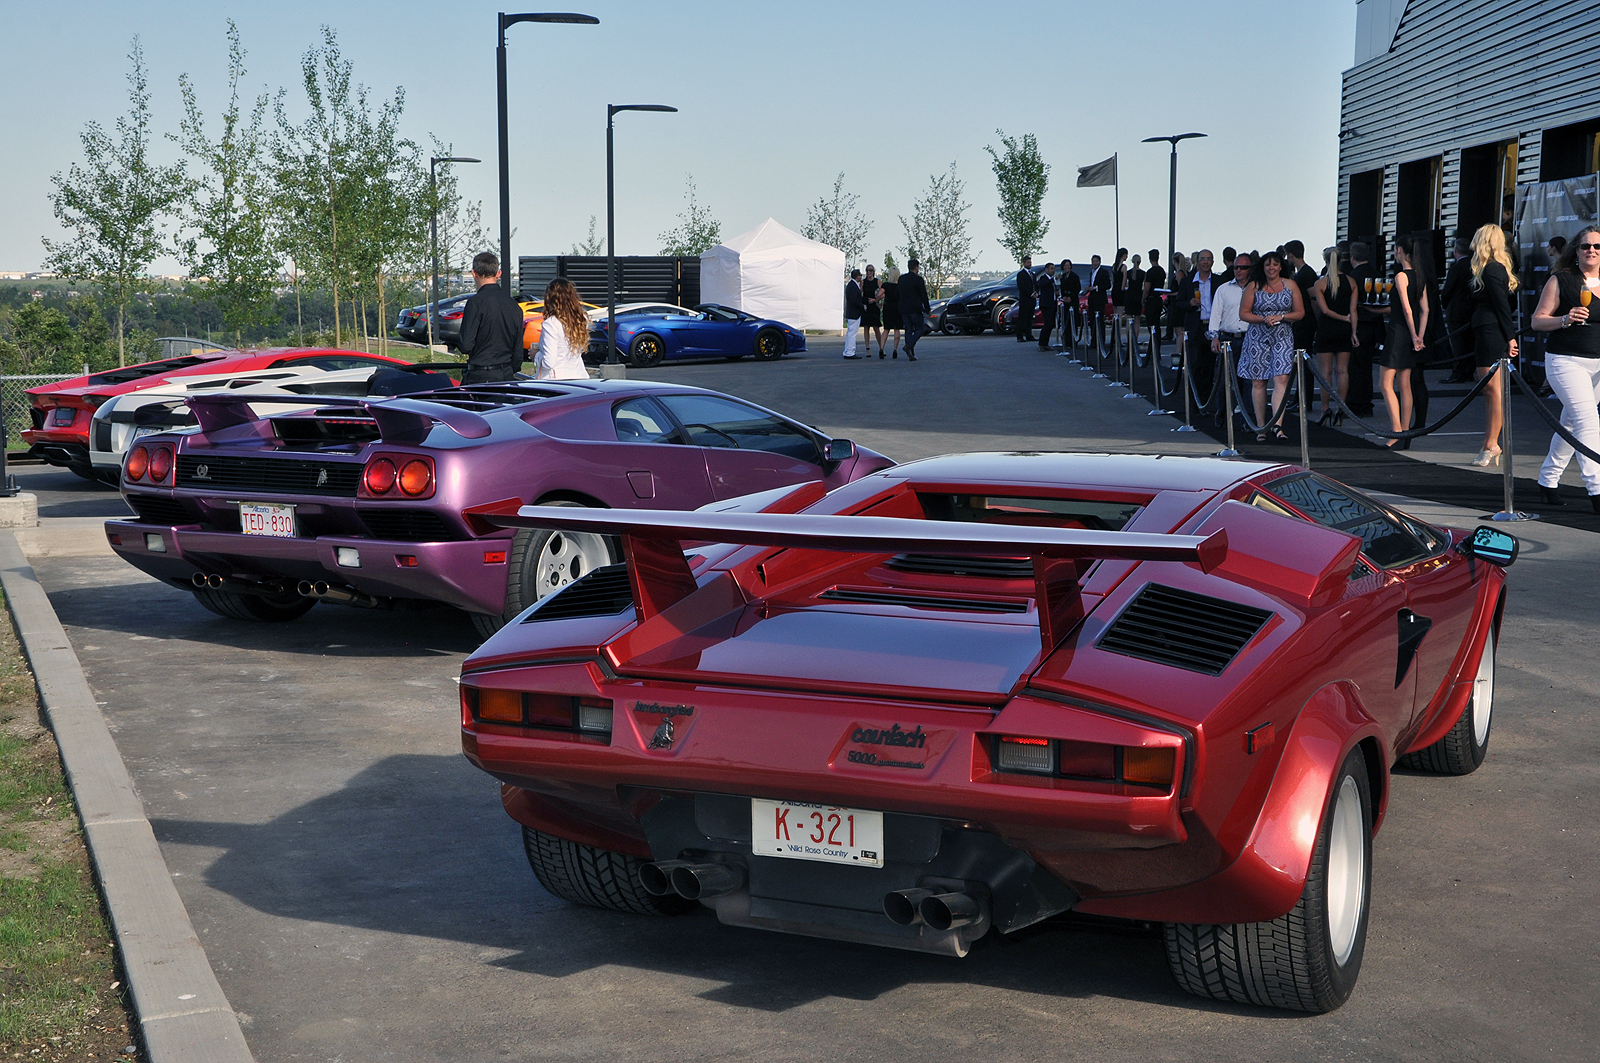 Lamborghini Calgary Grand Opening GTspirit - Lamborghini car dealership